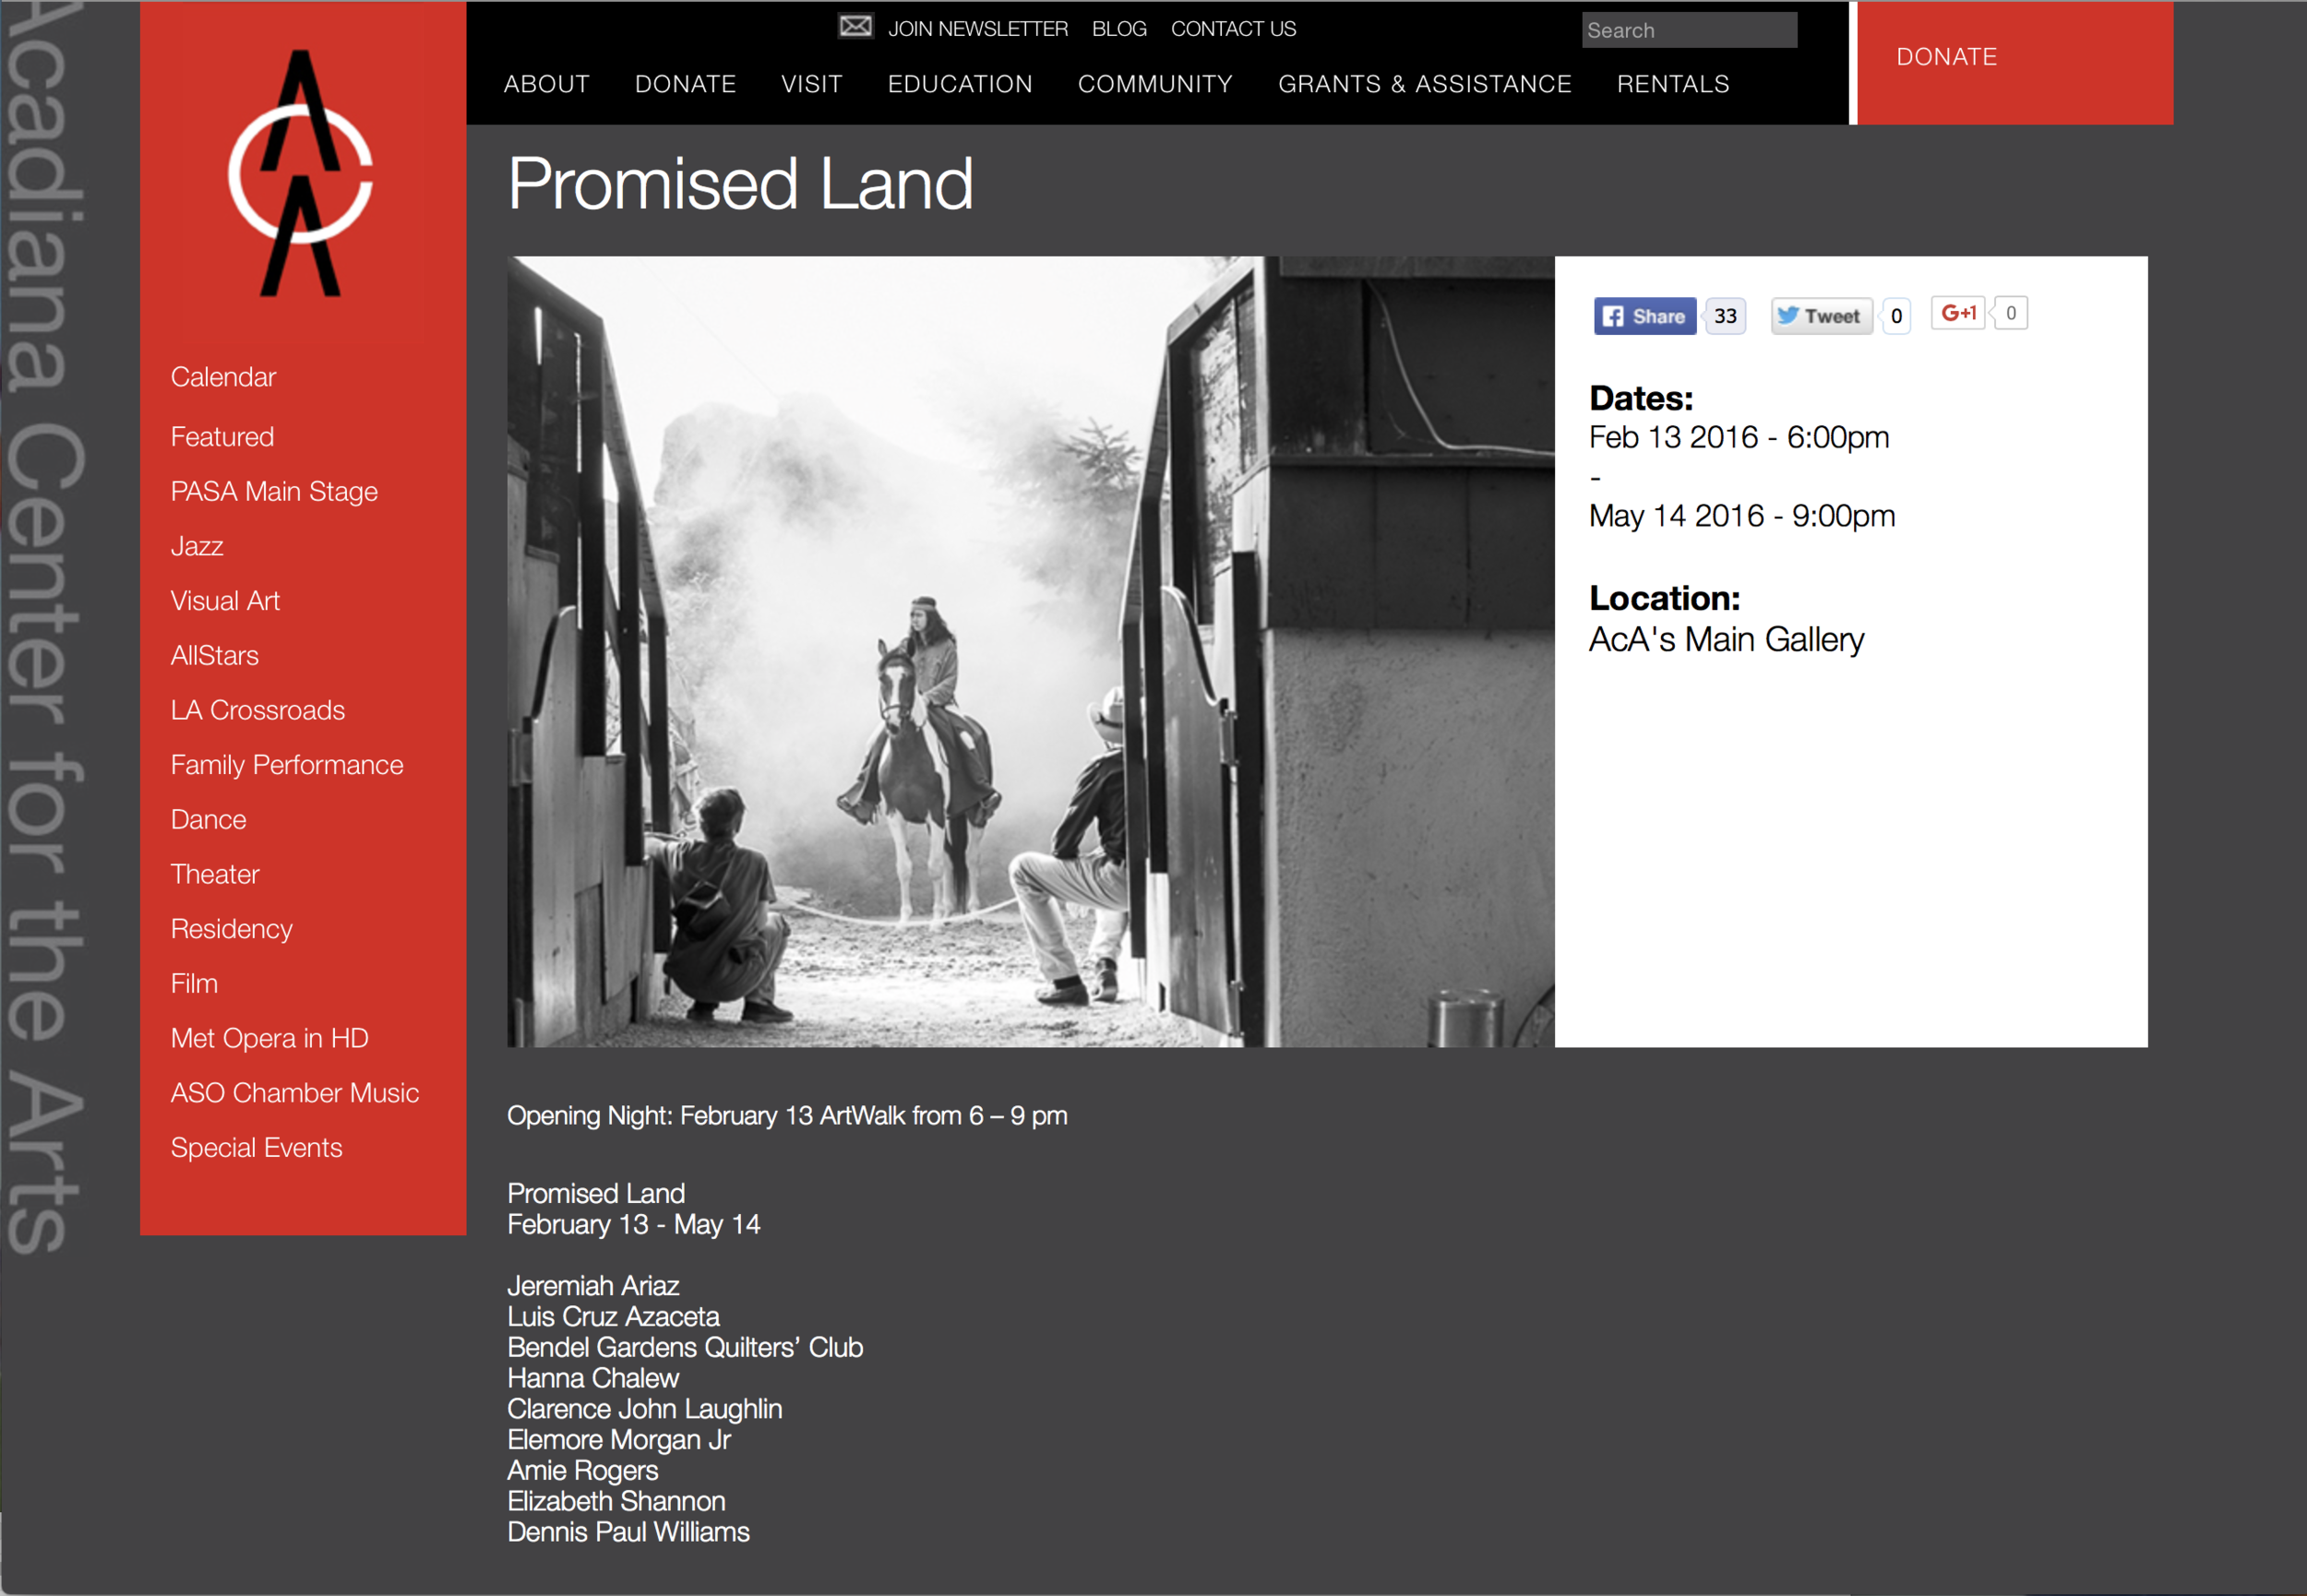 """Promised Land explores how one's perception of """"home"""" shapes our personal vision of the world. The various artists included in the exhibition use different mechanisms of storytelling: identity, opportunity, family, security, prosperity; which are in turn contrasted with potential vulnerability and loss.  Jeremiah Ariaz's photos speak to the """"wild west"""" and its renowned opportunity, as well as, capture its evaporated dreams as ghost towns supplant prosperity, teepees sprouting from barren isolation.  The artists in Promised Land offer a wide spectrum of ideas; from struggle to the sublime, all are in search of a place to call home. —Mary Beyt"""